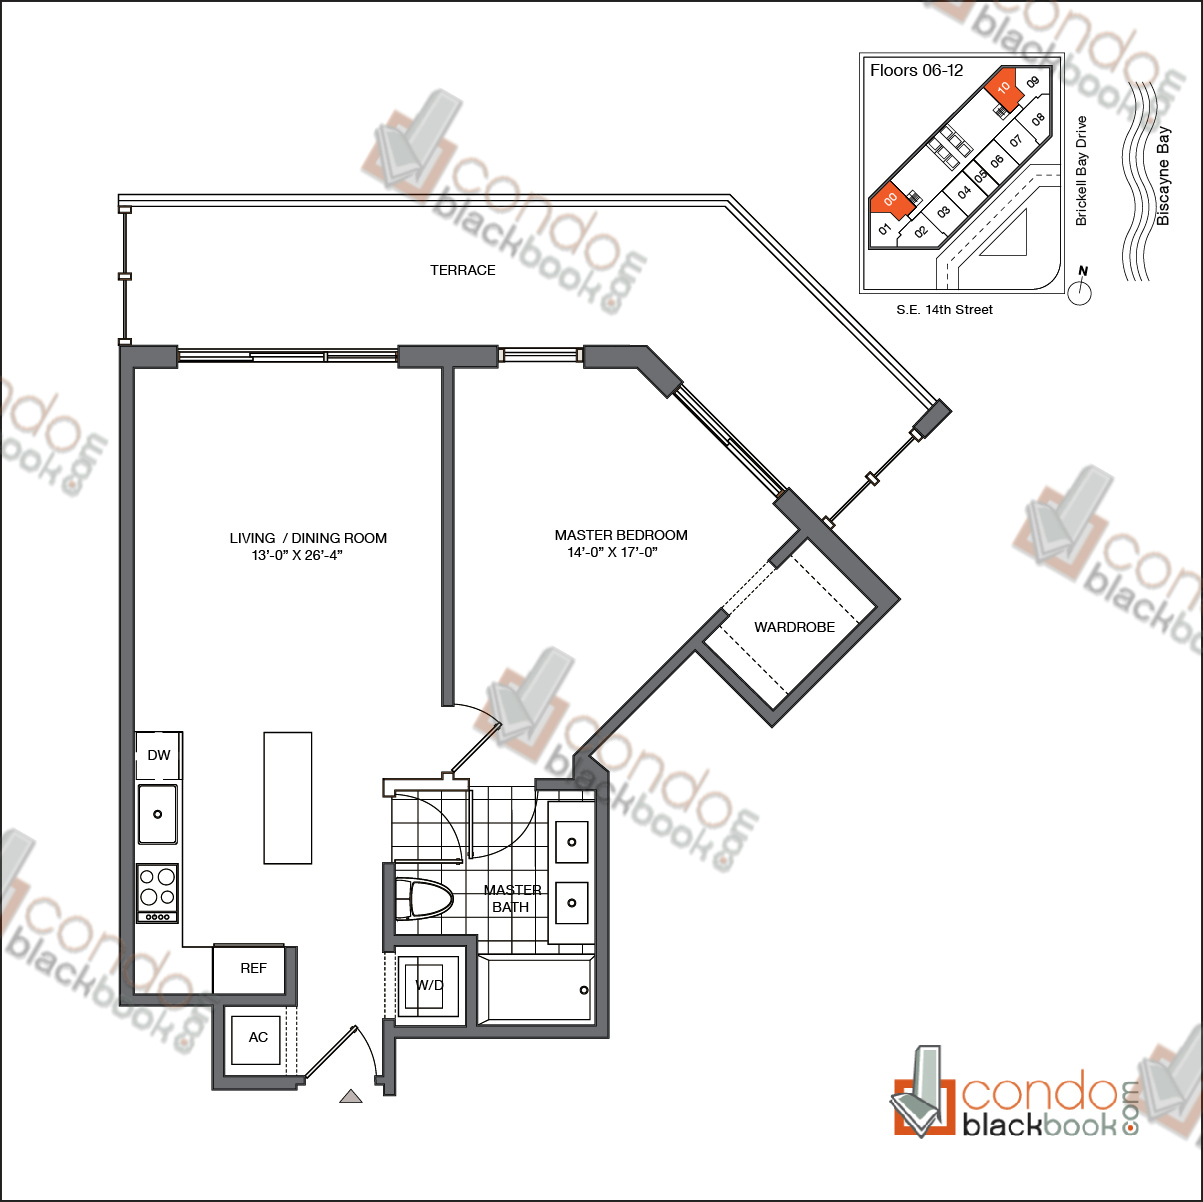 Floor plan for Brickell House Brickell Miami, model A3_6-12, line 00, 10, 1/1 bedrooms, 725 sq ft